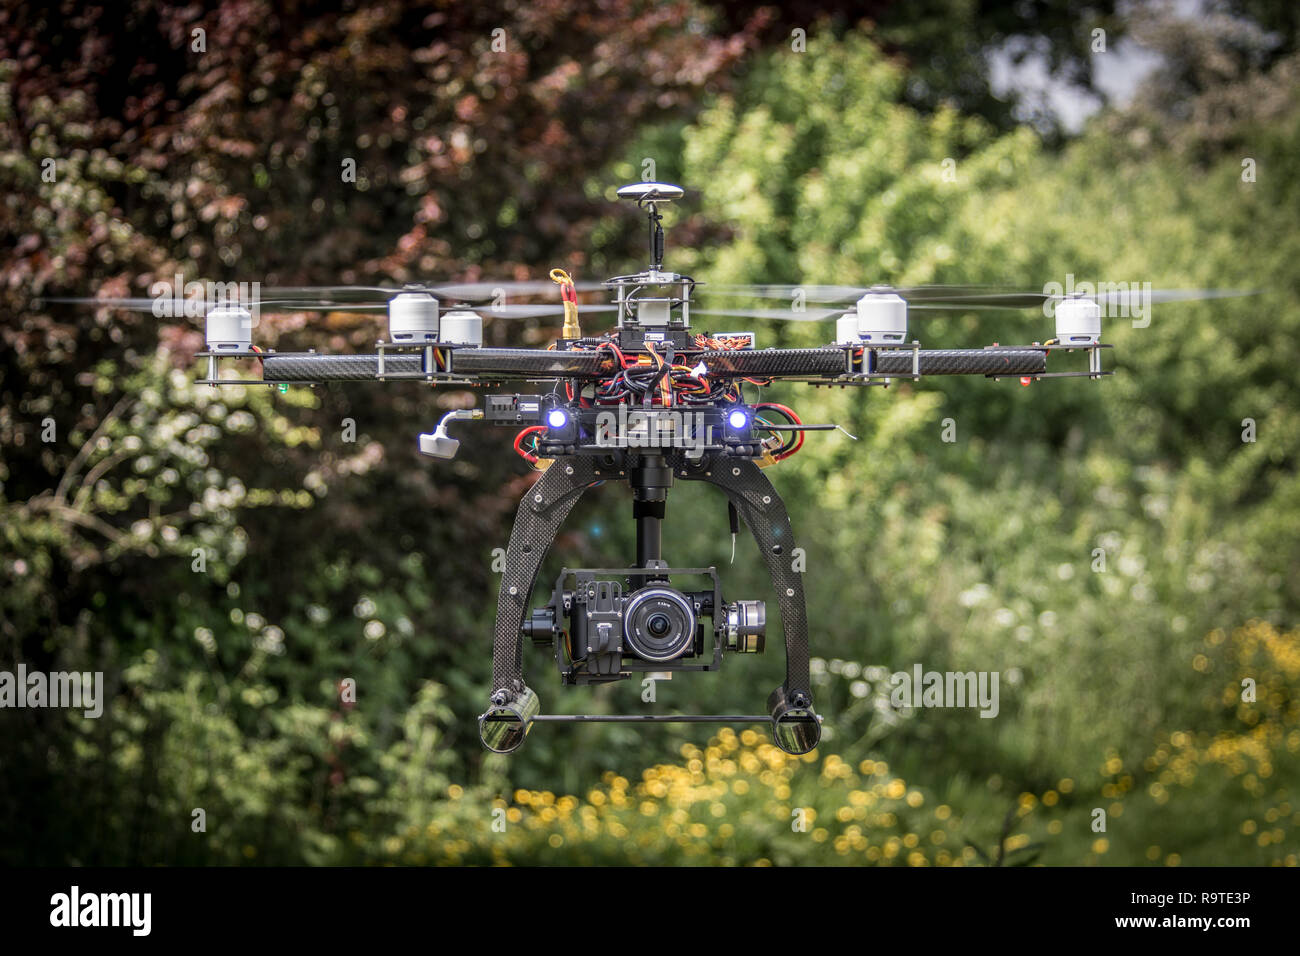 Hexecopter flying - Stock Image